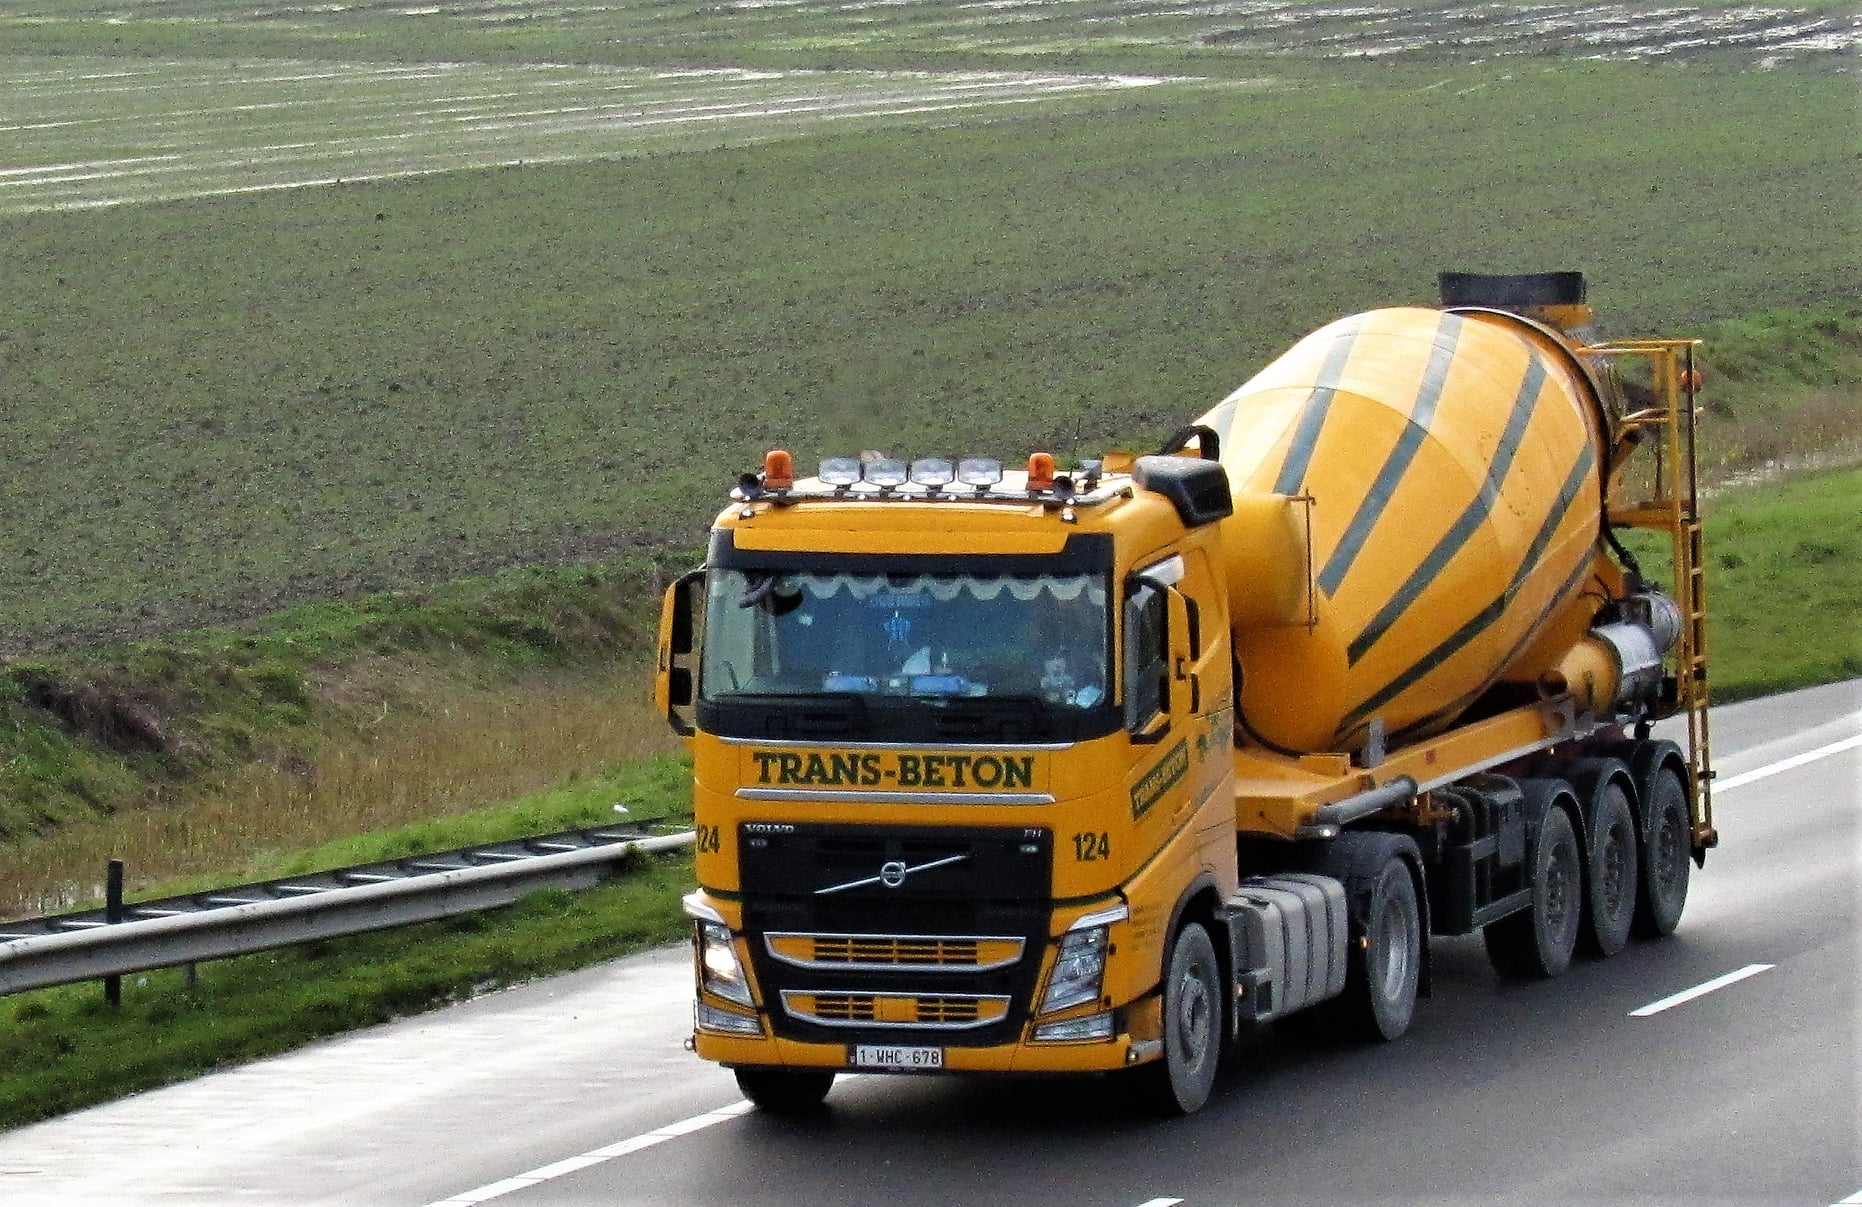 Volvo-Trans-Beton-N62-west-10-2-2021--Willems-foto